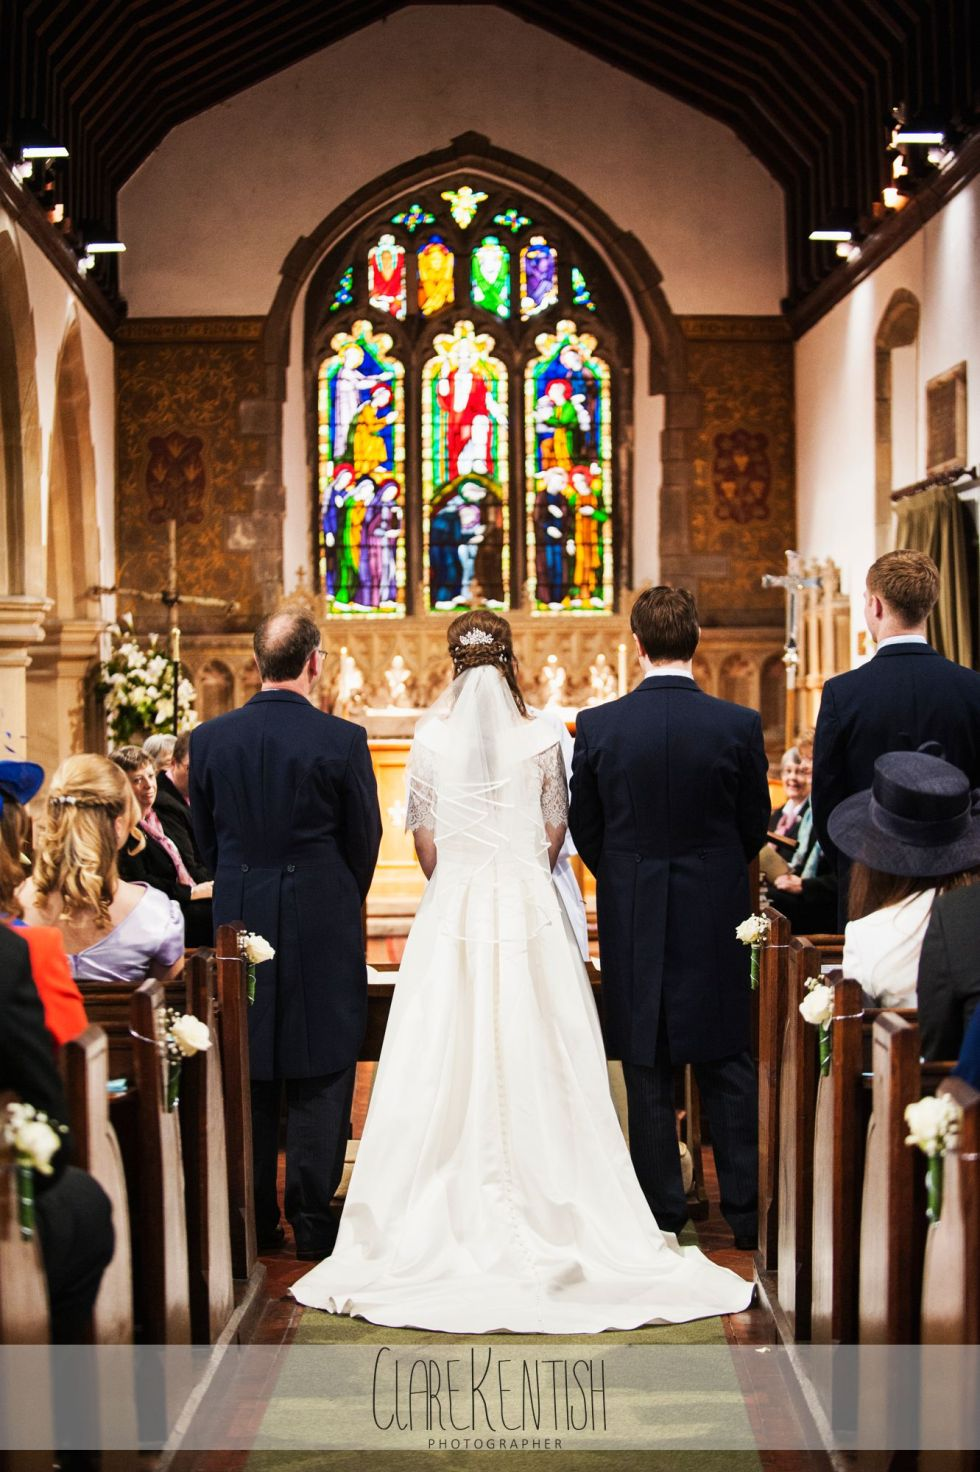 essex_wedding_photographer_rayleigh_photography_clare_kentish_forrester_park_chelmsford_260